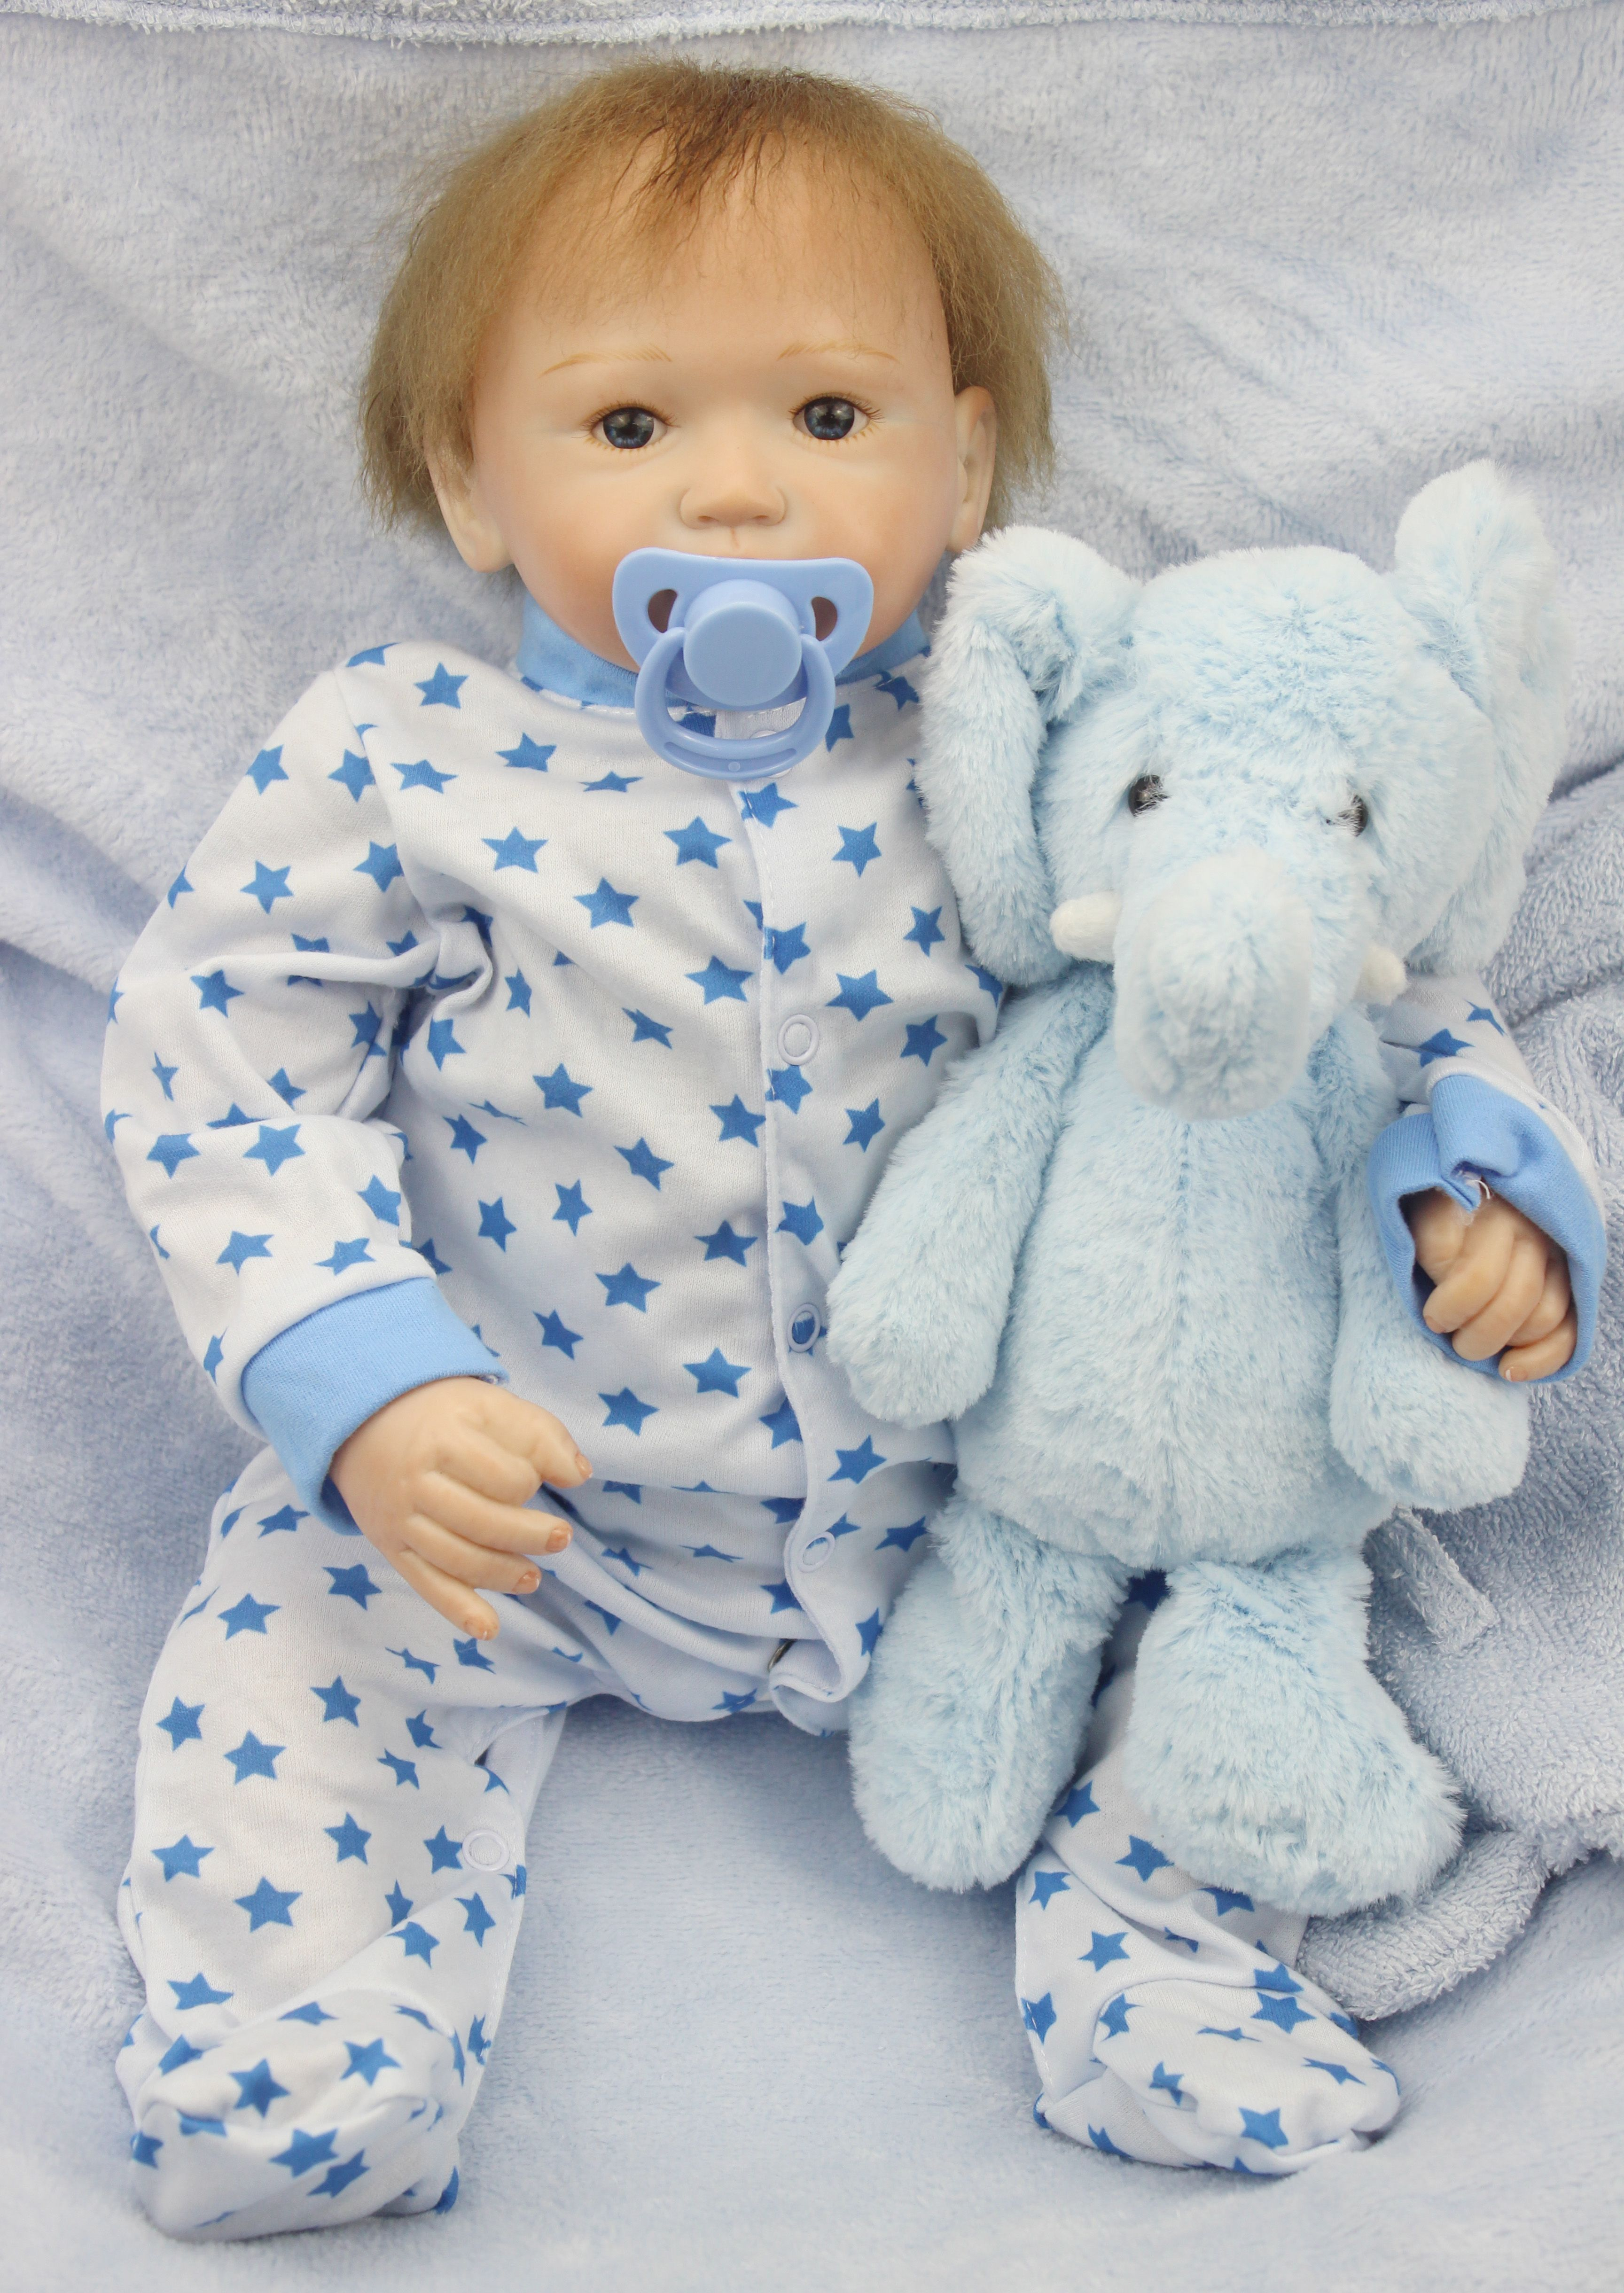 Reborn Baby Boy Dolls Toddler 22 inches Real Life Look Baby Dolls Boy with Bear